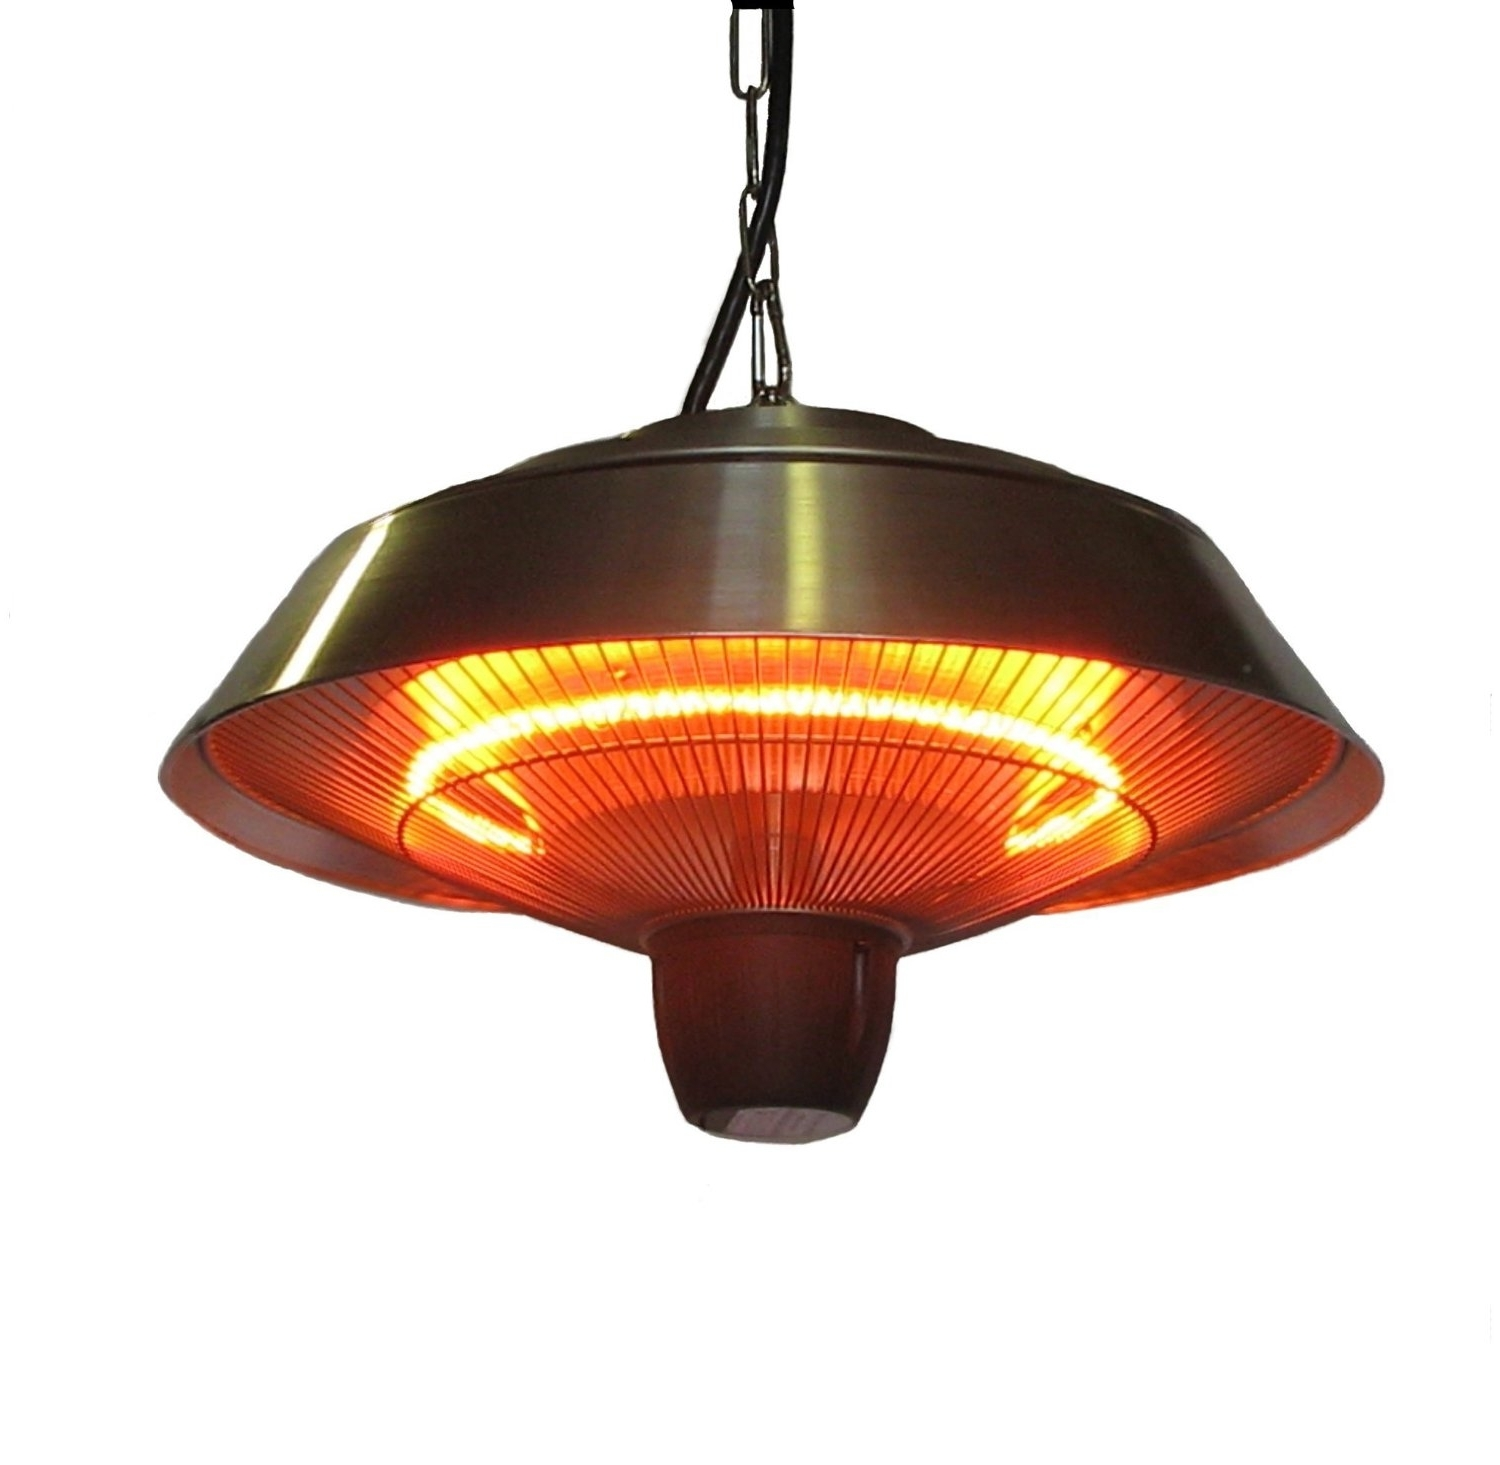 Quality Outdoor Ceiling Fans In Fashionable Interior: Hunter Ceiling Fan Light Kits Menards Ceiling, Menards (Gallery 11 of 20)